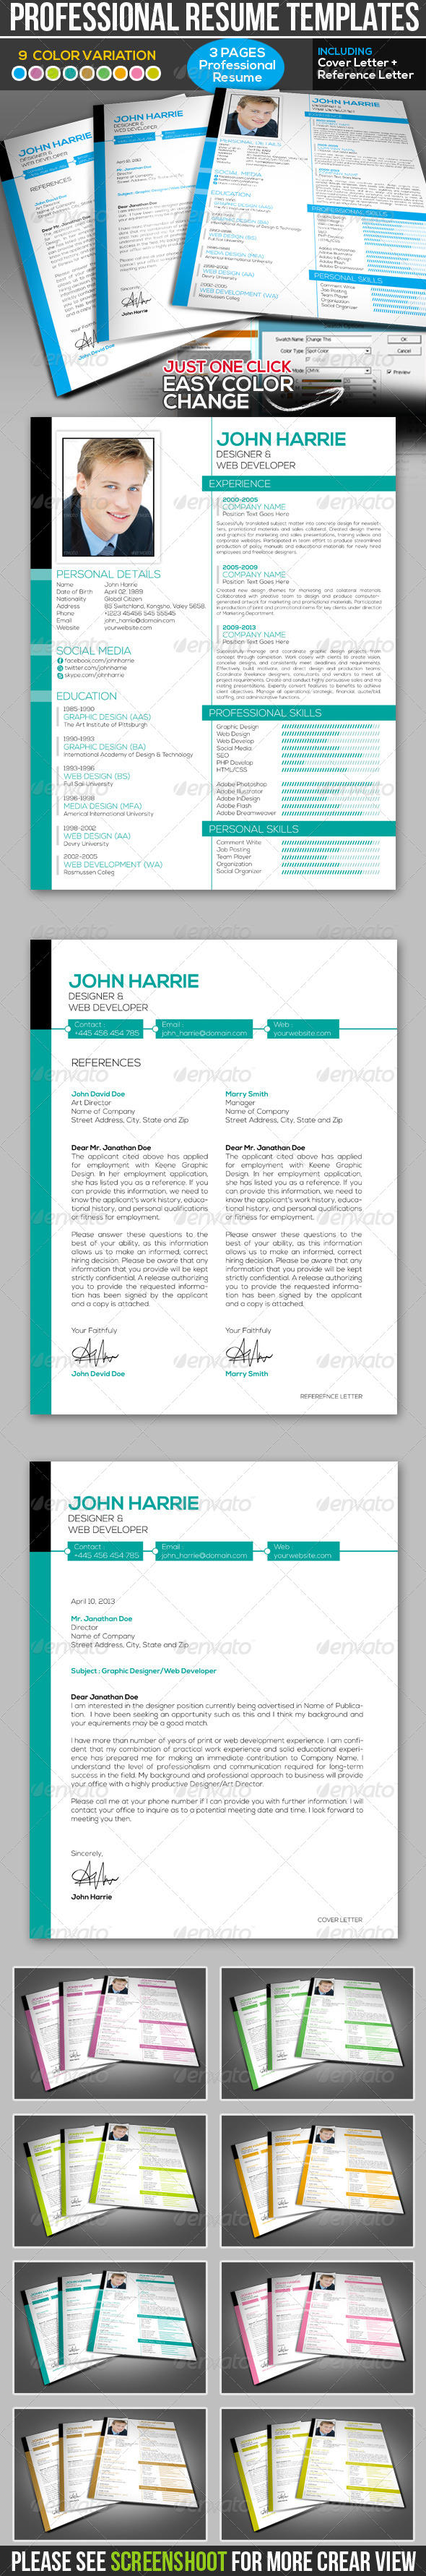 cv template pages sample customer service resume cv template pages resume template 3 page on behance professional resume templates resumes stationery